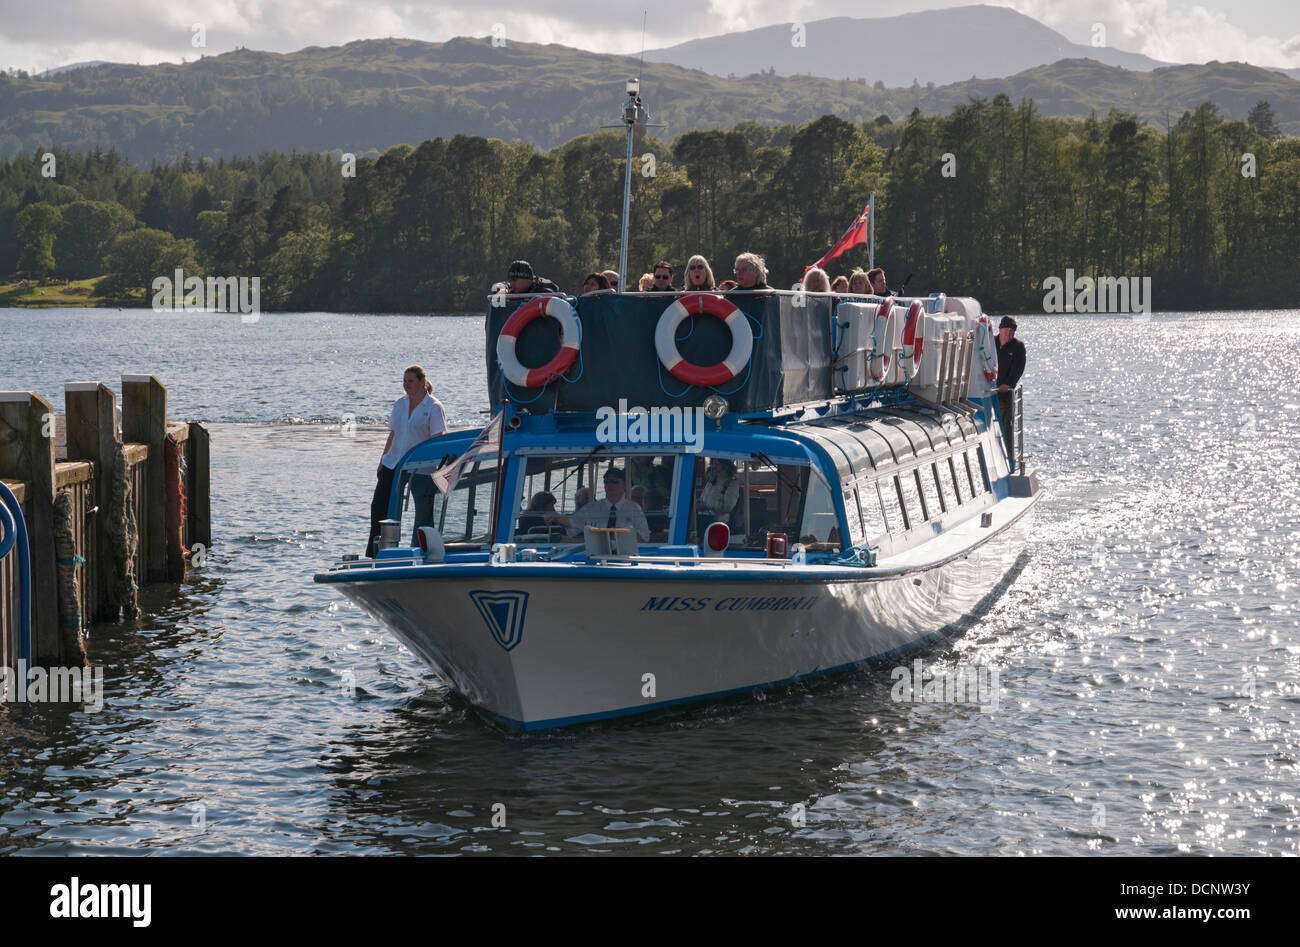 Great Britain, England, Cumbria, Lake District, Lake Windermere, tour boat Miss Cumbria IV docking at Ambleside - Stock Image